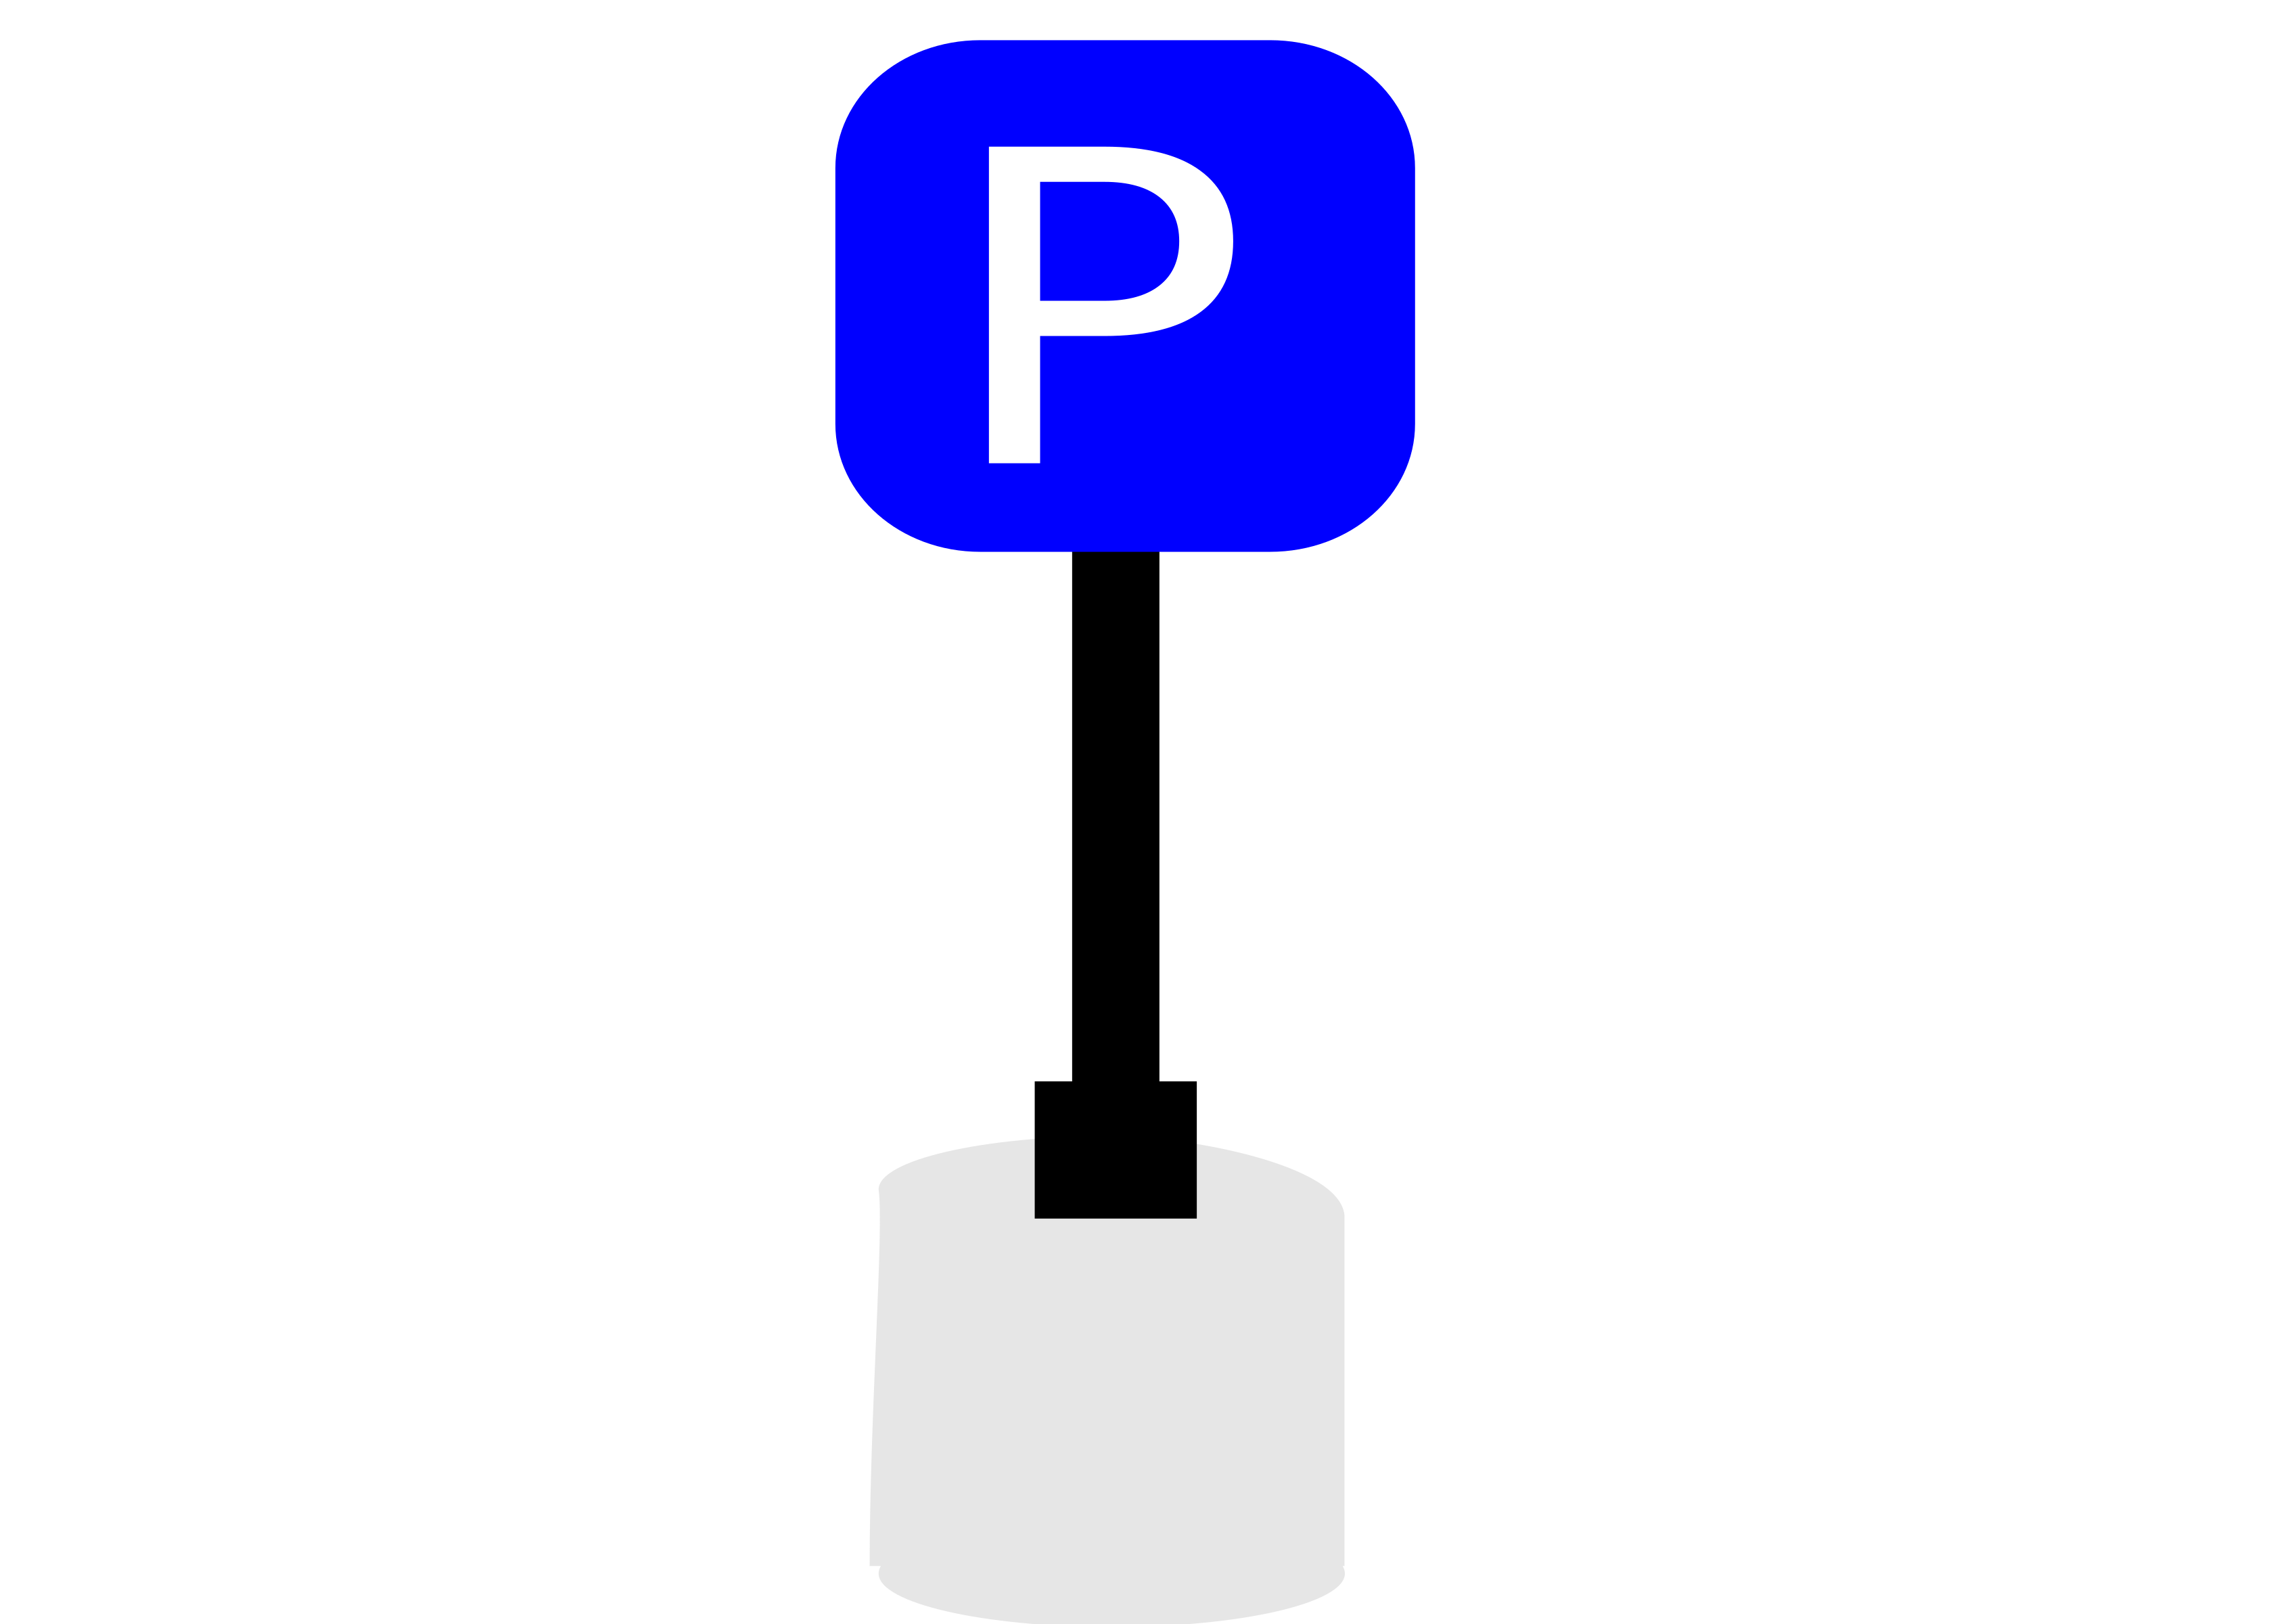 Clipart - parking sign